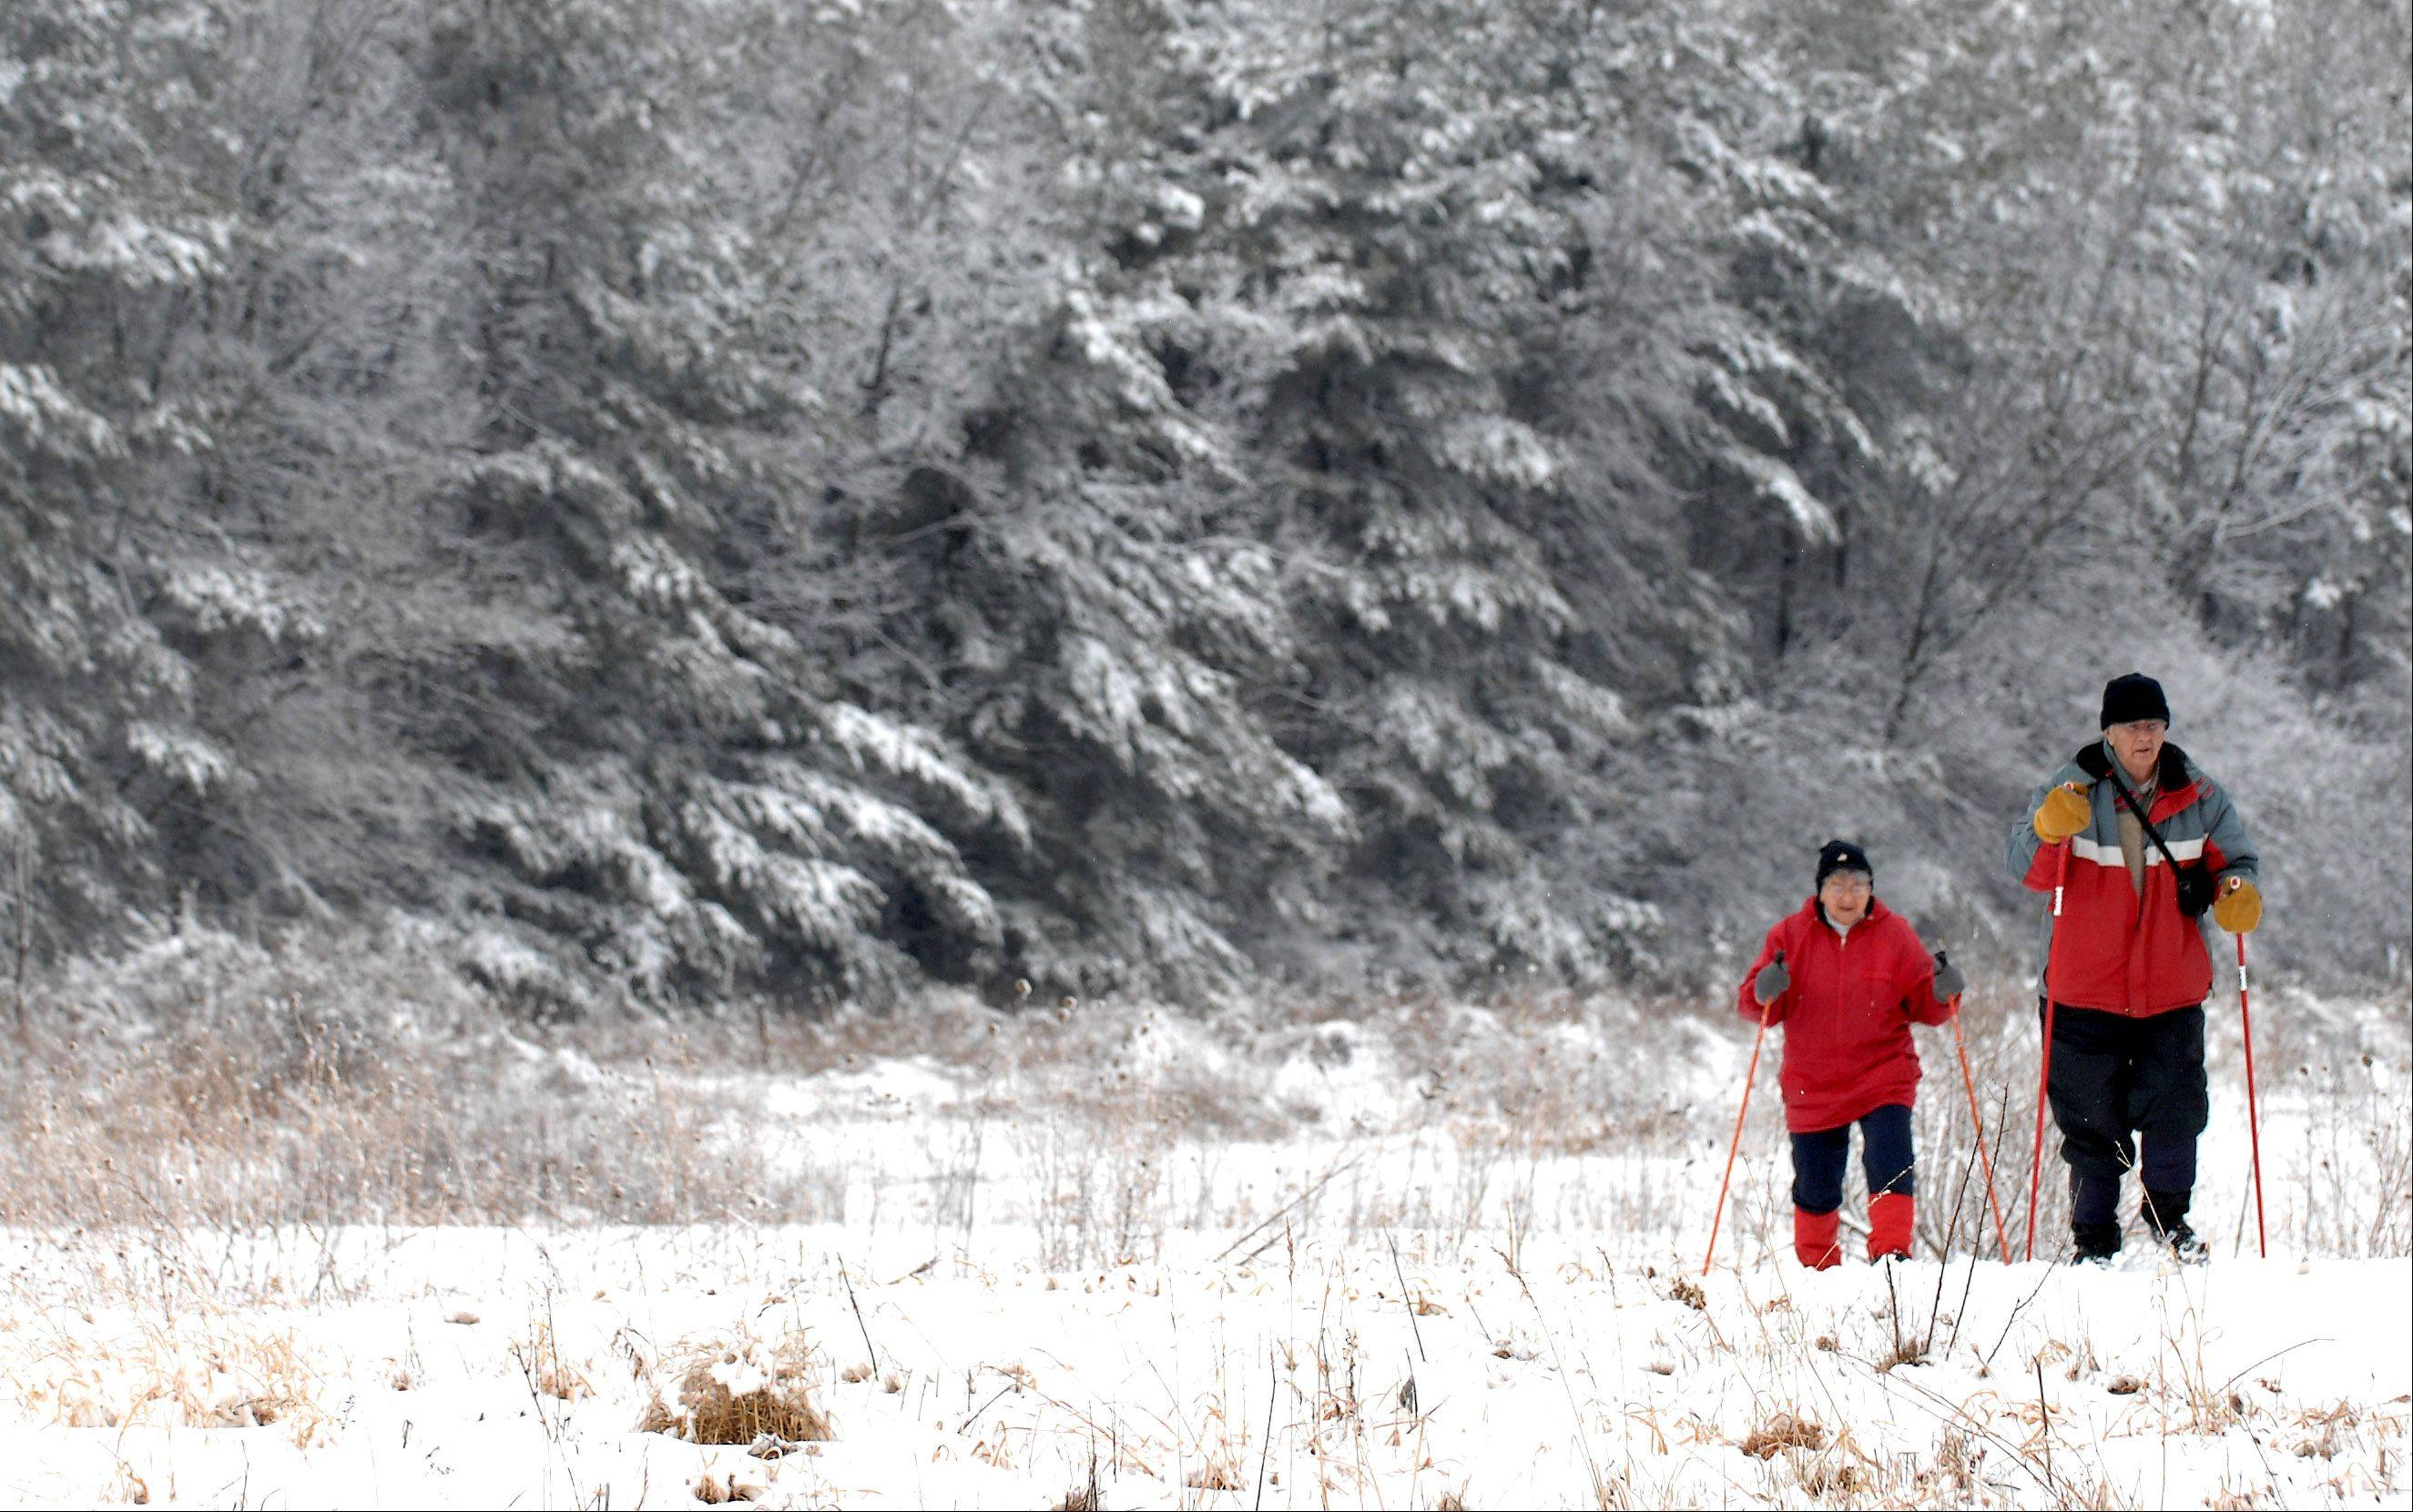 Jerry and Delores Hennen of Geneva break out their cross country skis and enjoy the overnight snowfall at LeRoy Oakes Forest Preserve in St. Charles Friday. They said after being able to ski around the area over 40 times last winter, that this was only the 11th time they'd had enough snow to do it this year.